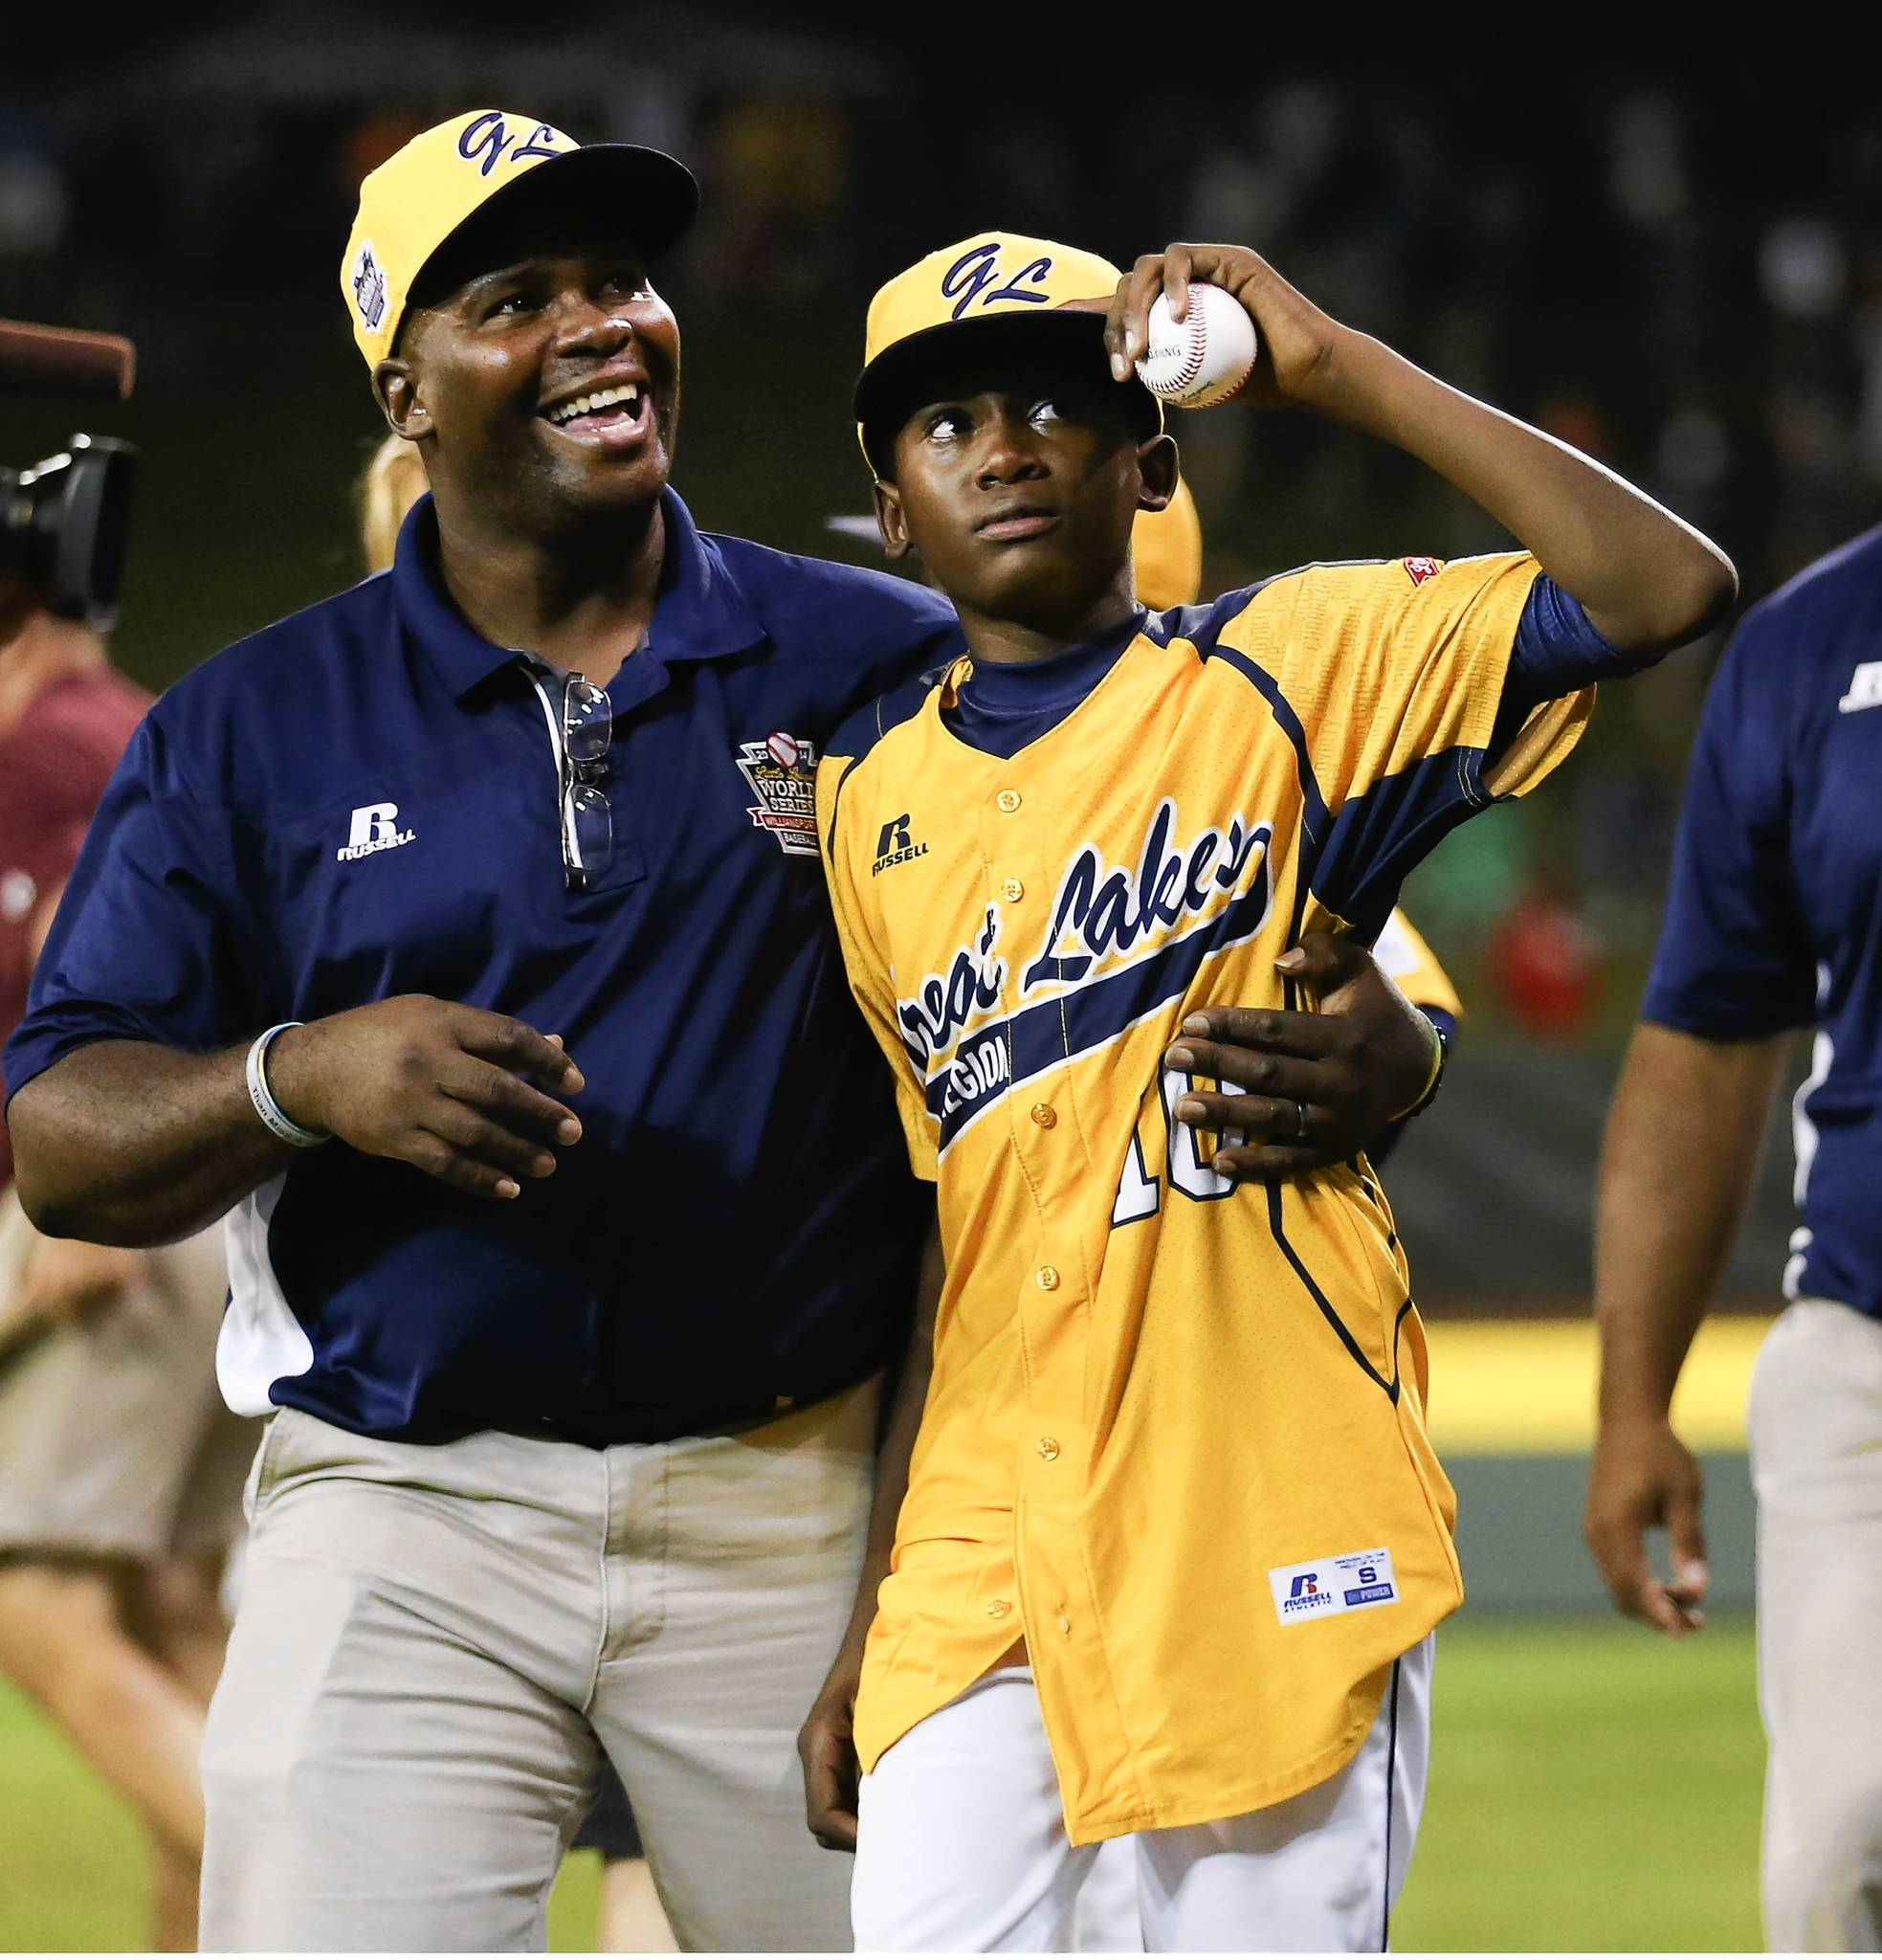 What will happen when those little leaguers grow up?